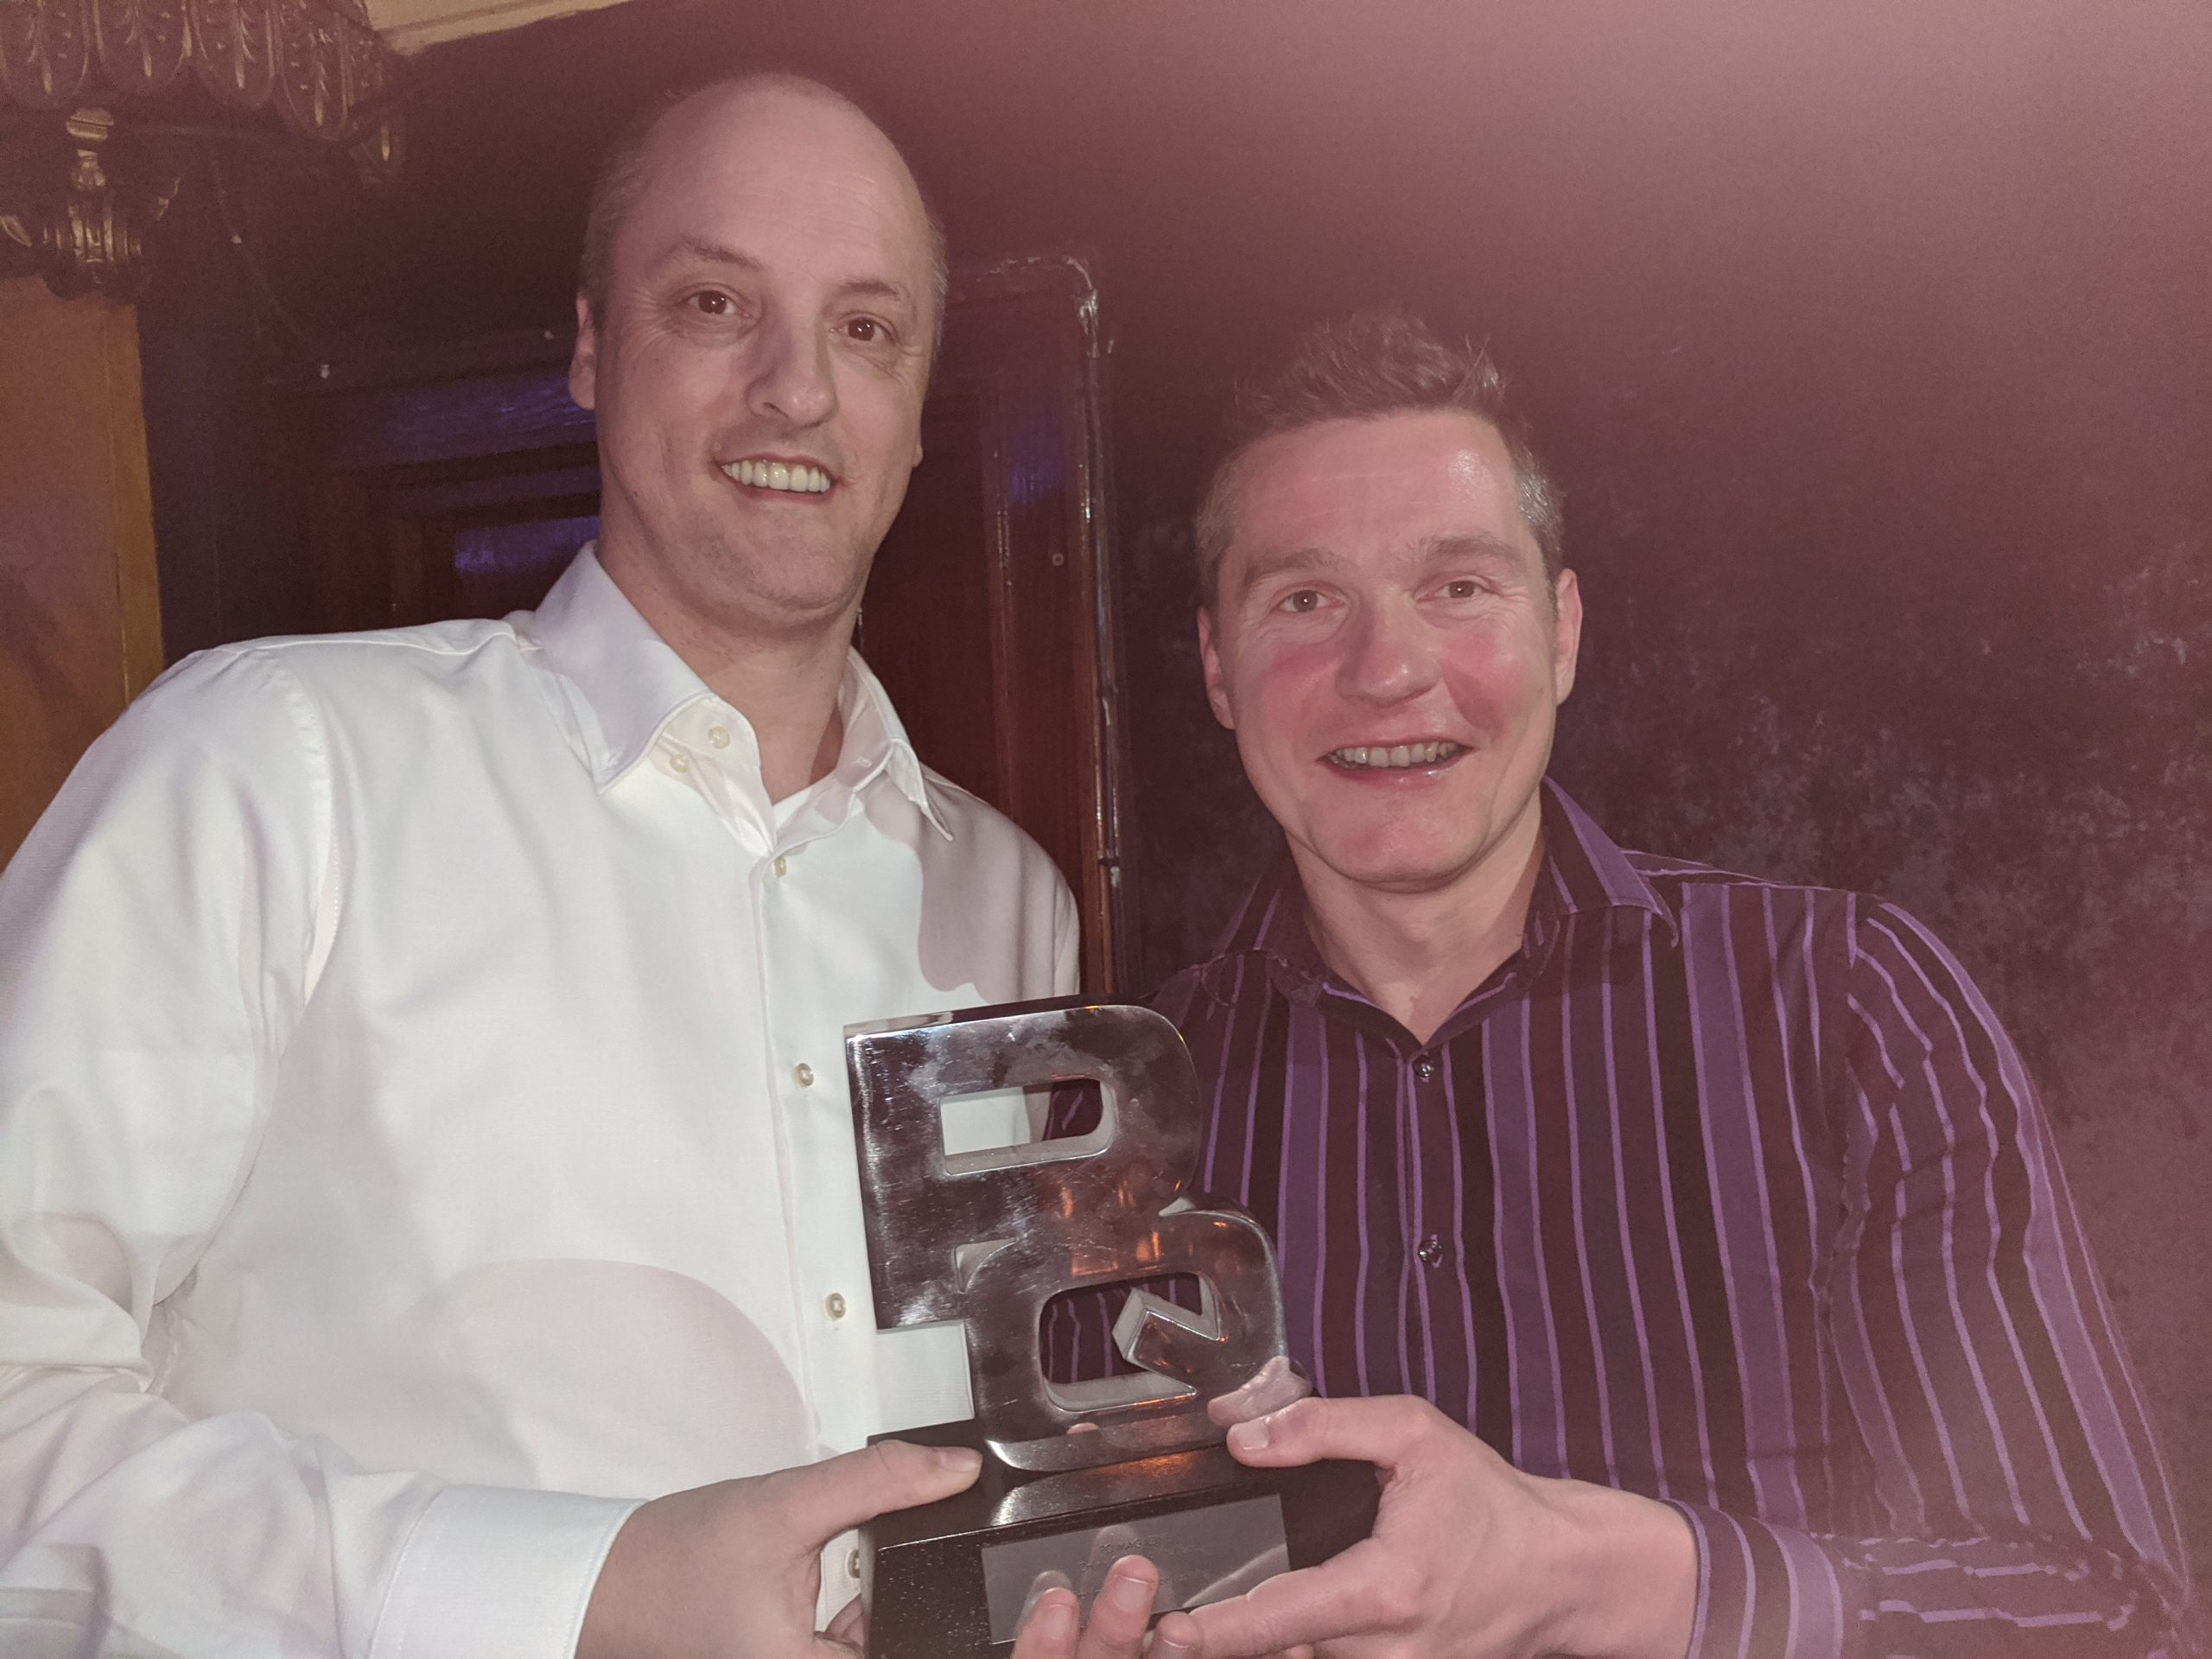 Find out more about the awards we won